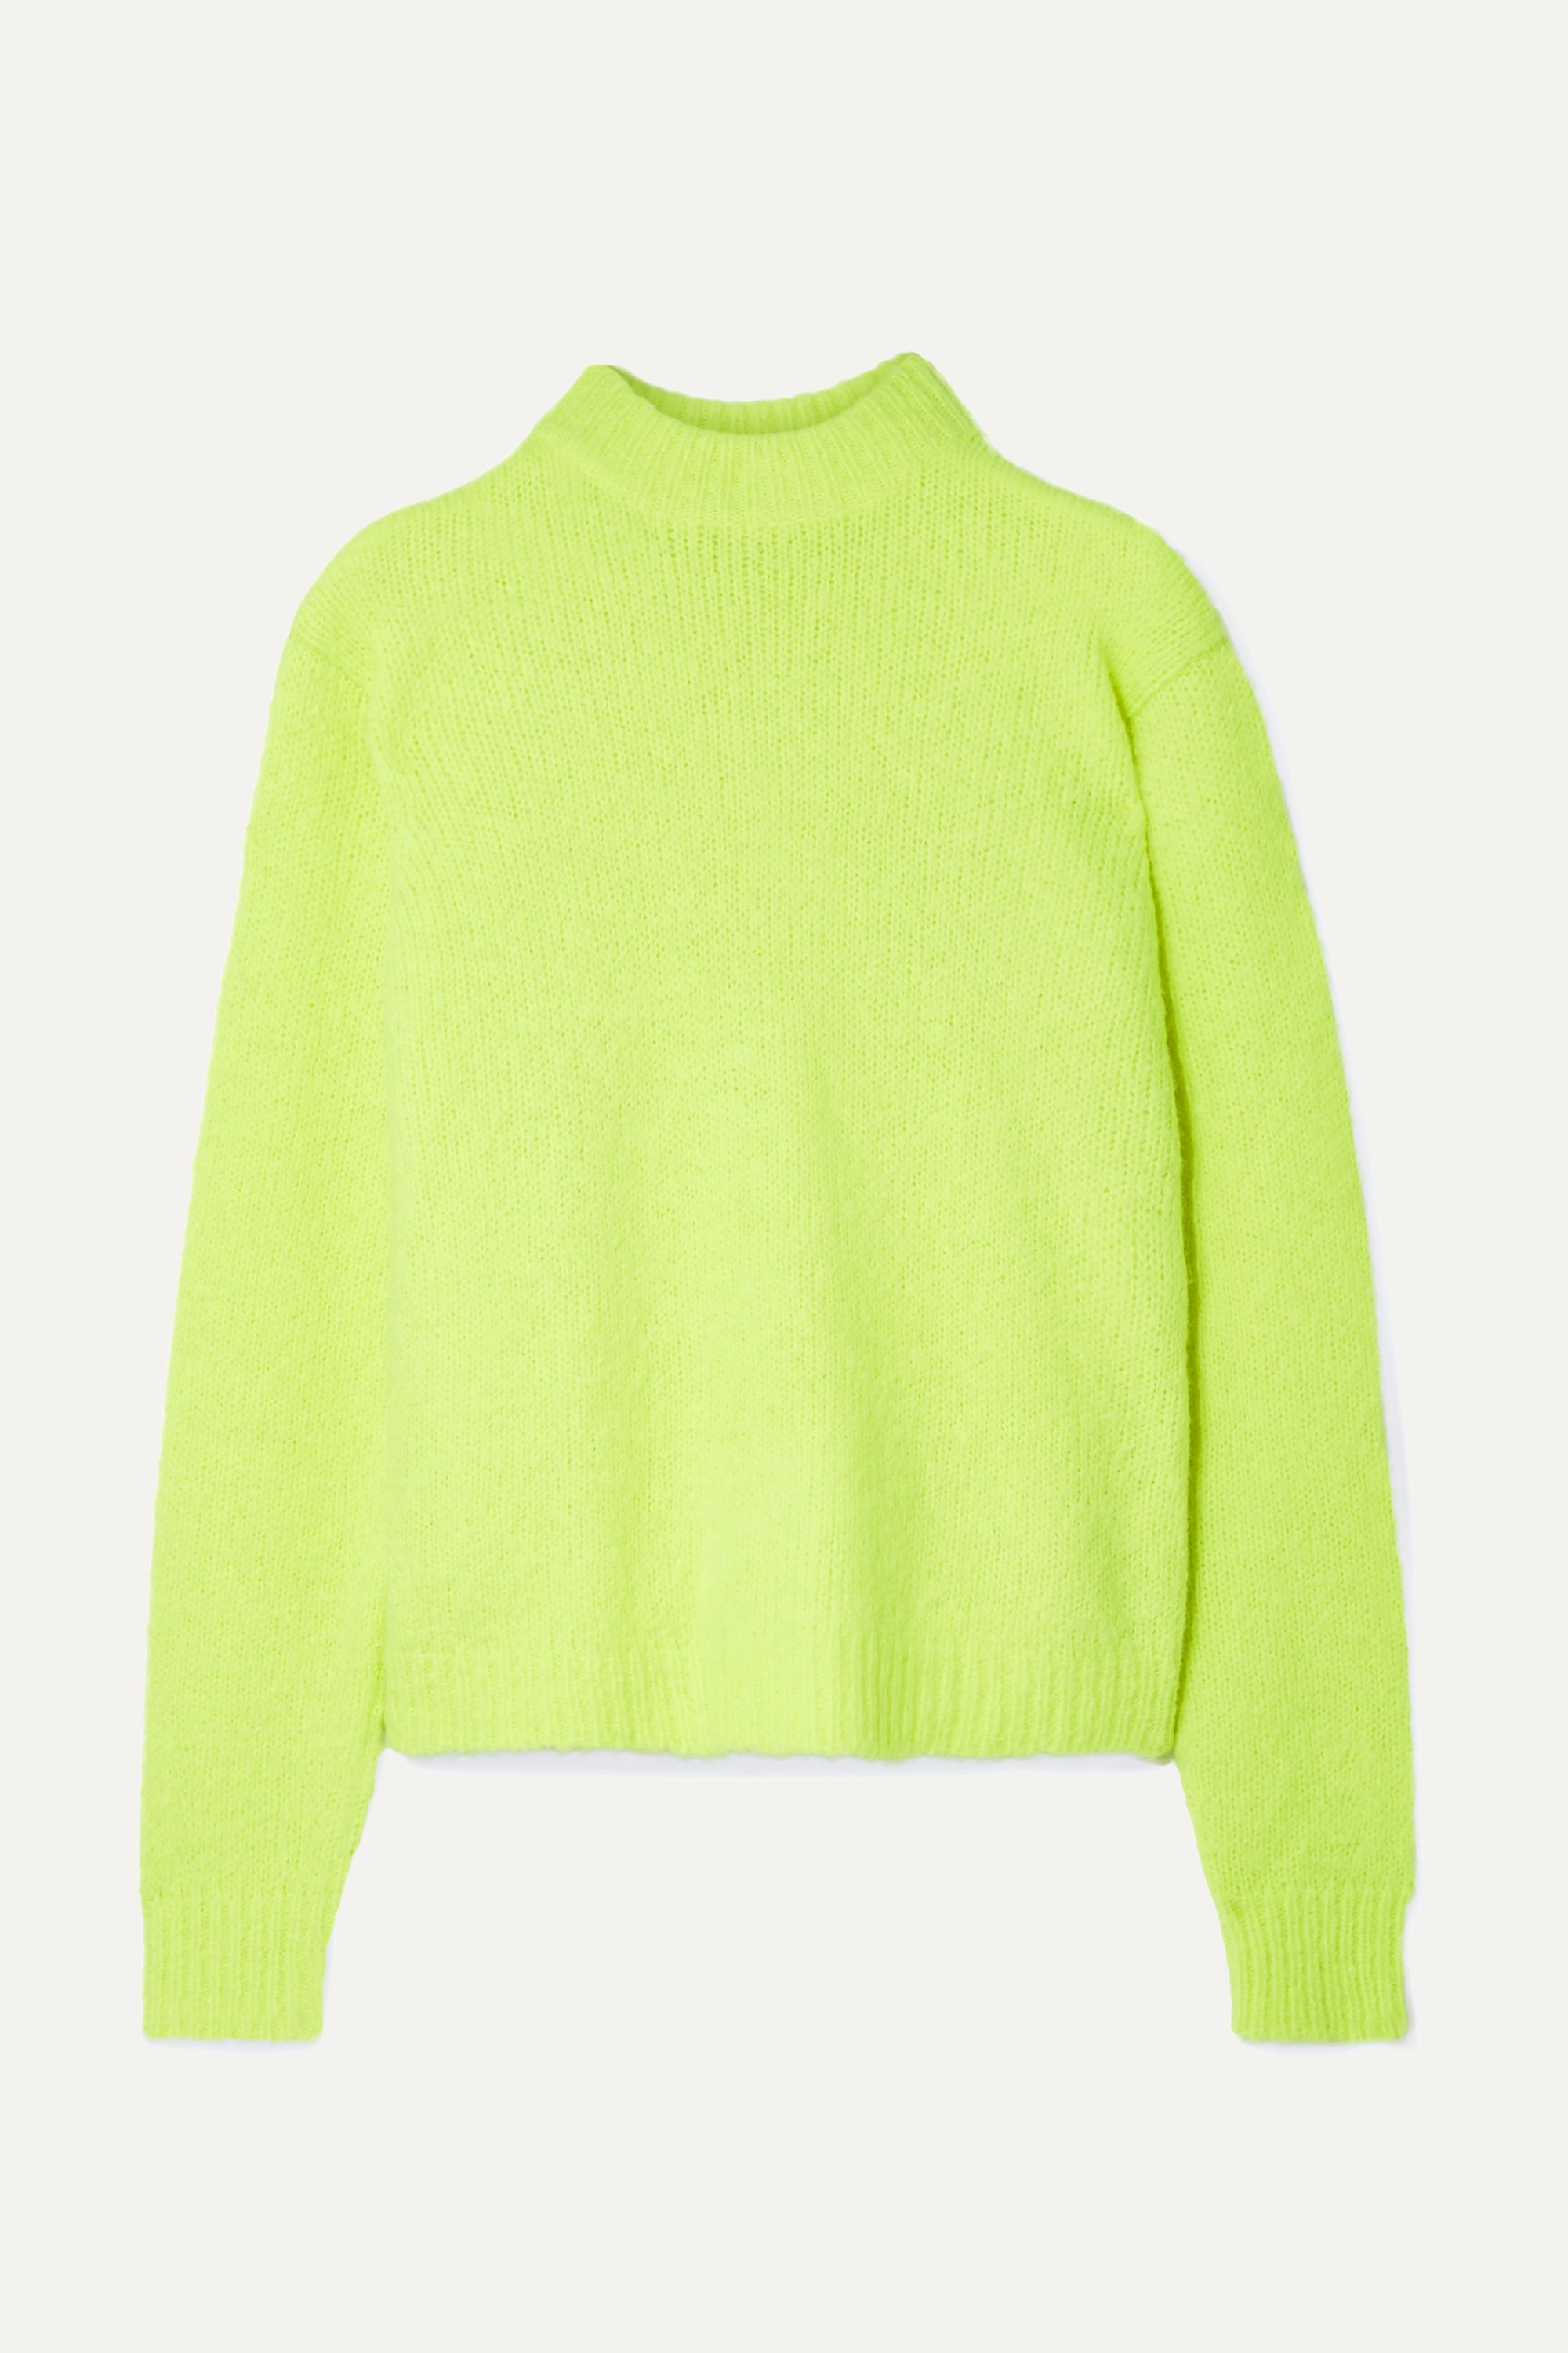 Ribbed Neon Sweater (50% off!)